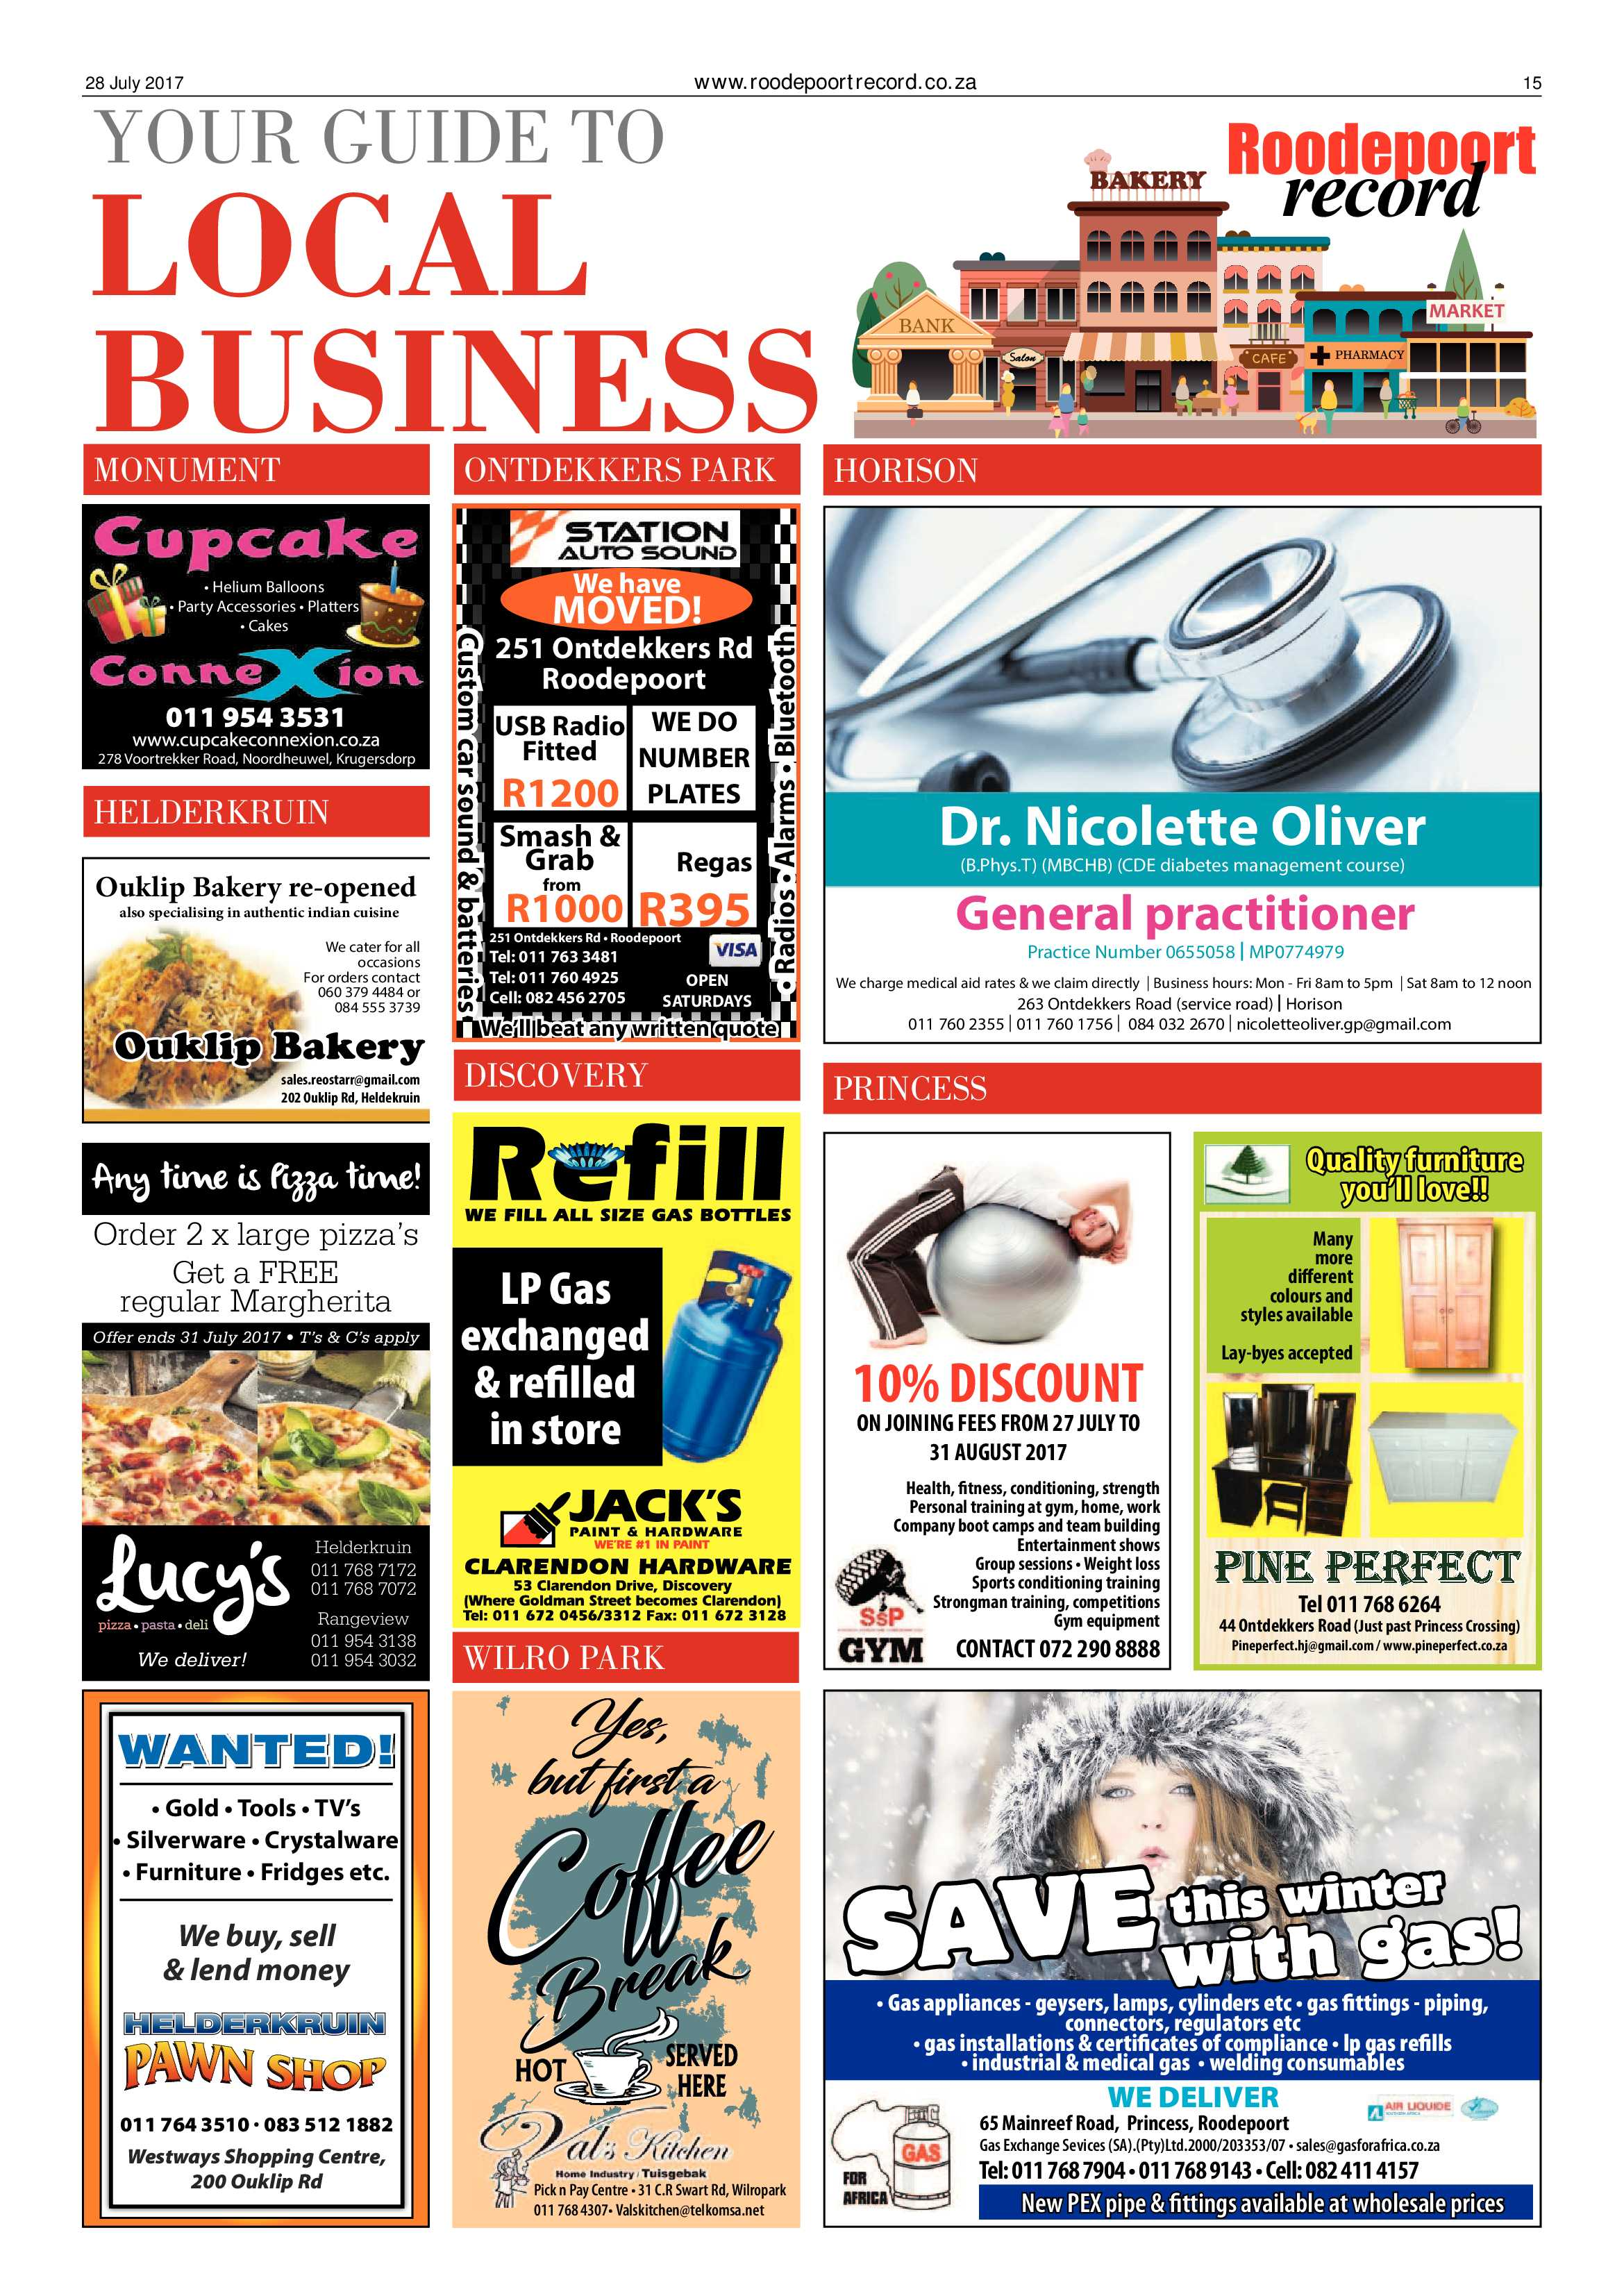 roodepoort-record-28-july-2017-epapers-page-15